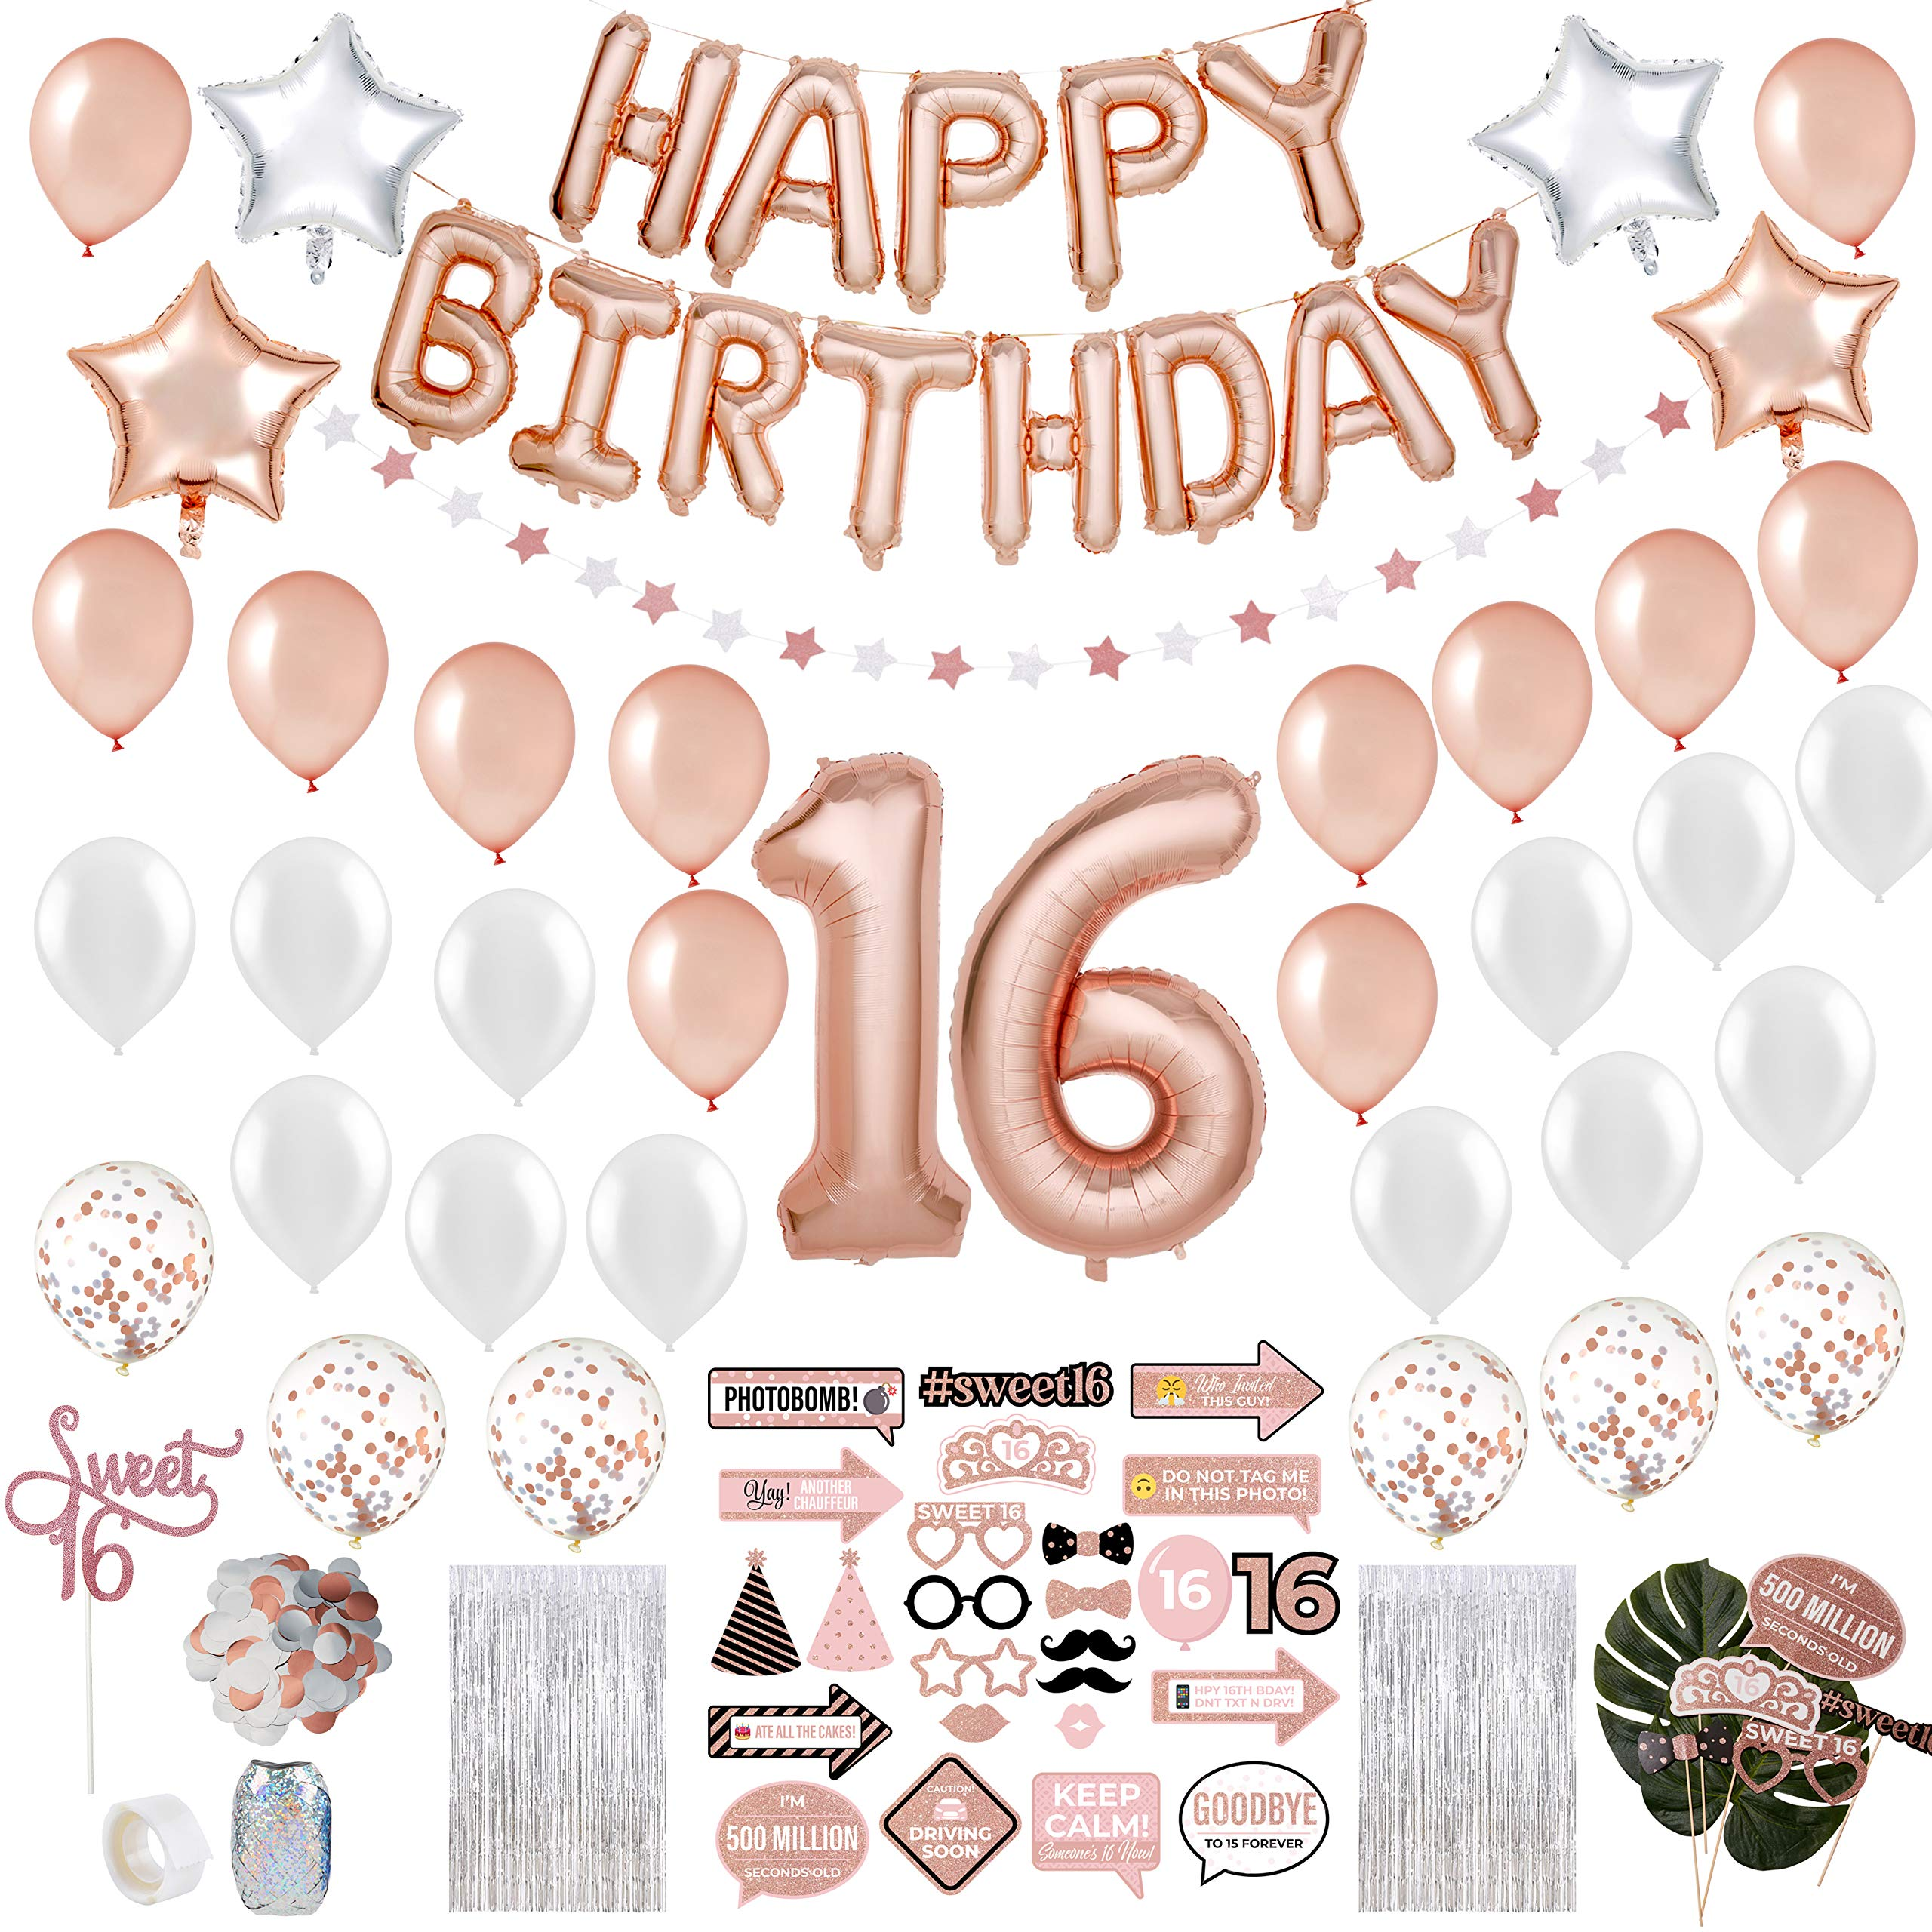 Sweet 16 Party Supplies WITH Photo Booth Backdrop and Props -Rose Gold Sweet 16 Decorations - 16th Birthday Party Supplies WITH Happy Birthday Banner, 16, Confetti and Mylar Balloons|Sweet Sixteen by PartyHooman